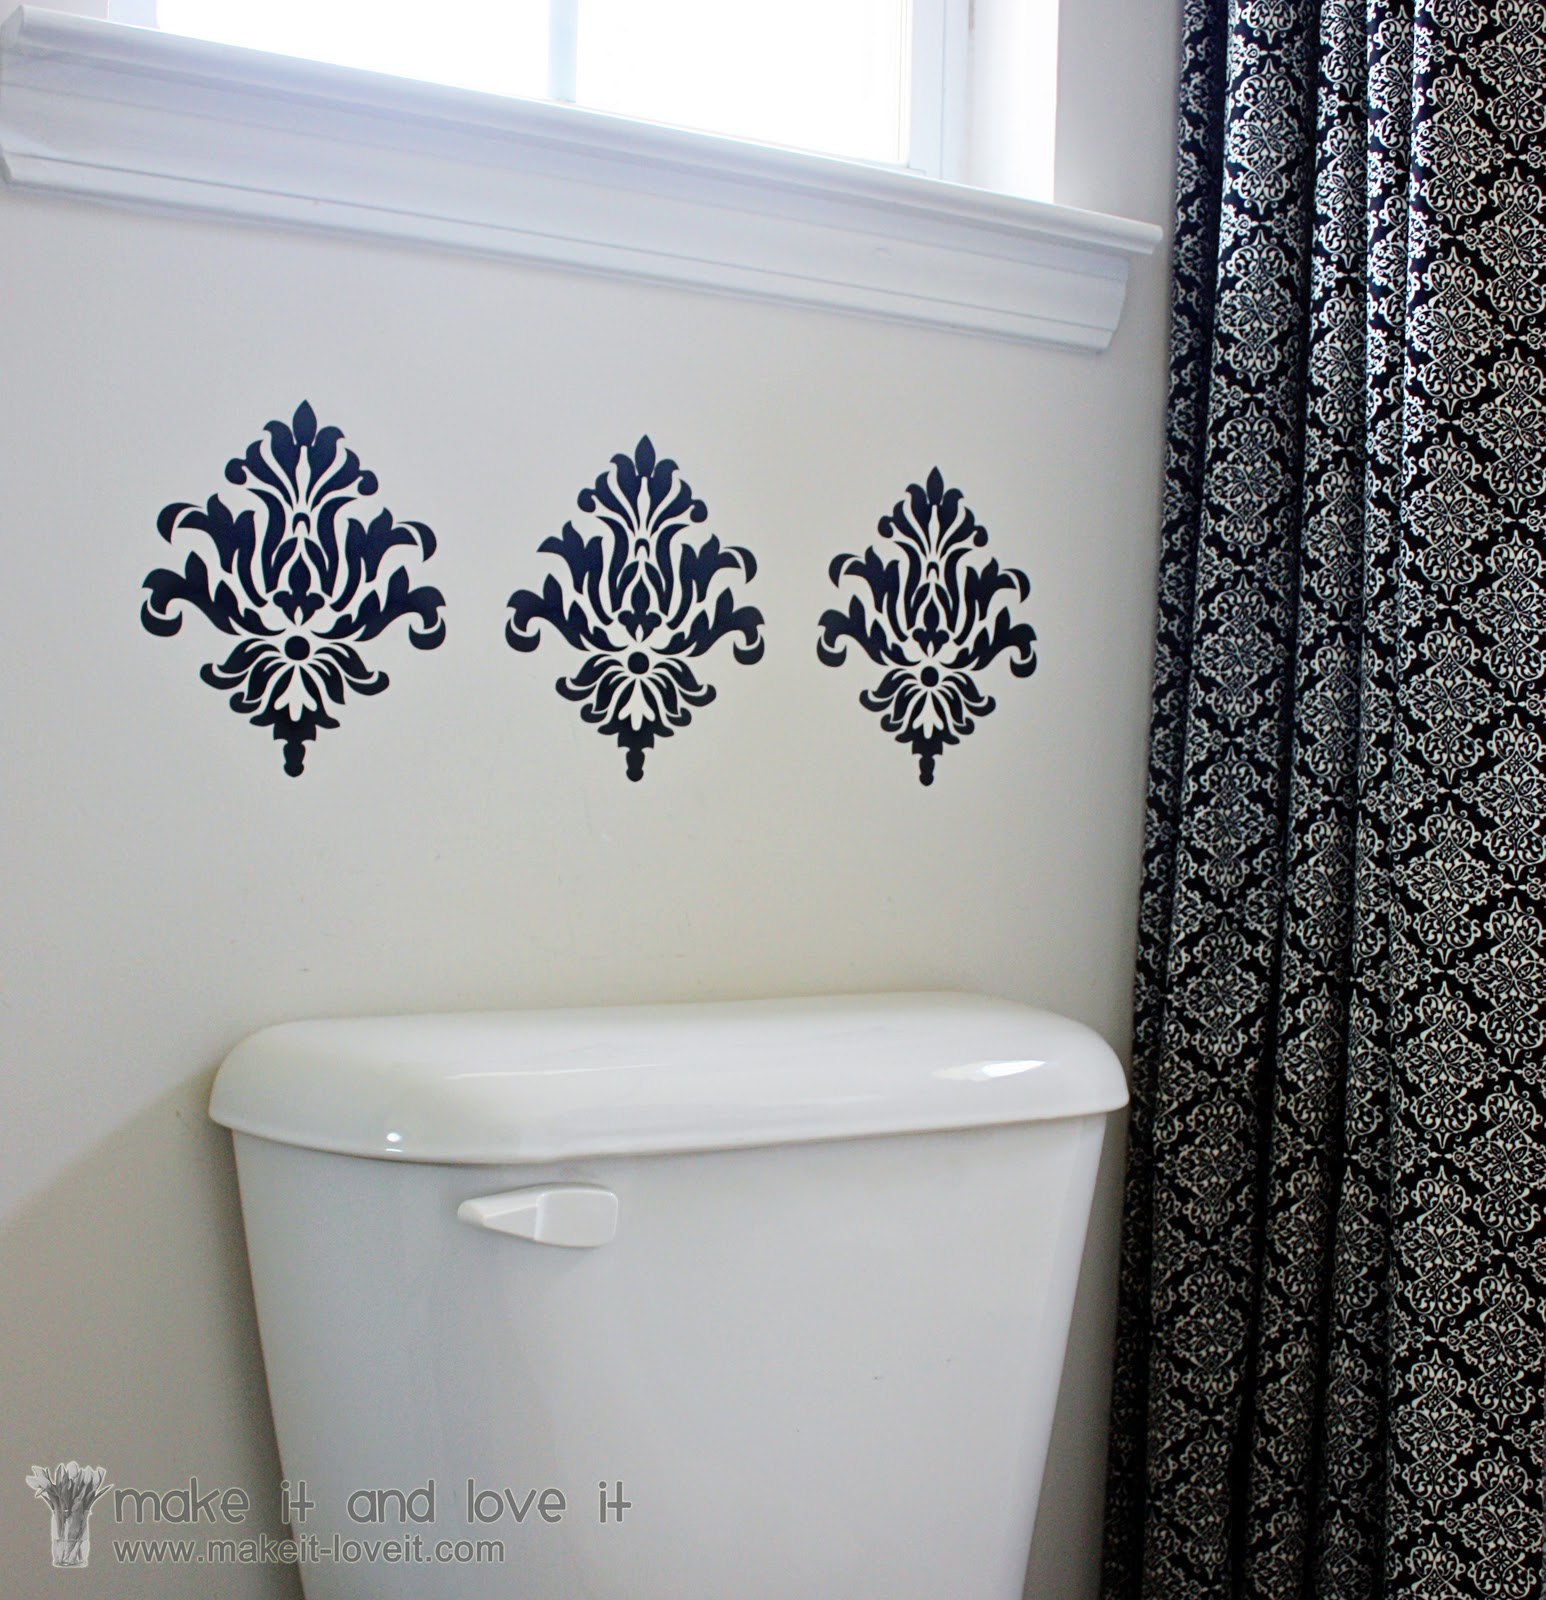 Creative Cricut And Vinyl Projects On Pinterest: Vinyl Projects....a Whole Bunch Of Them.